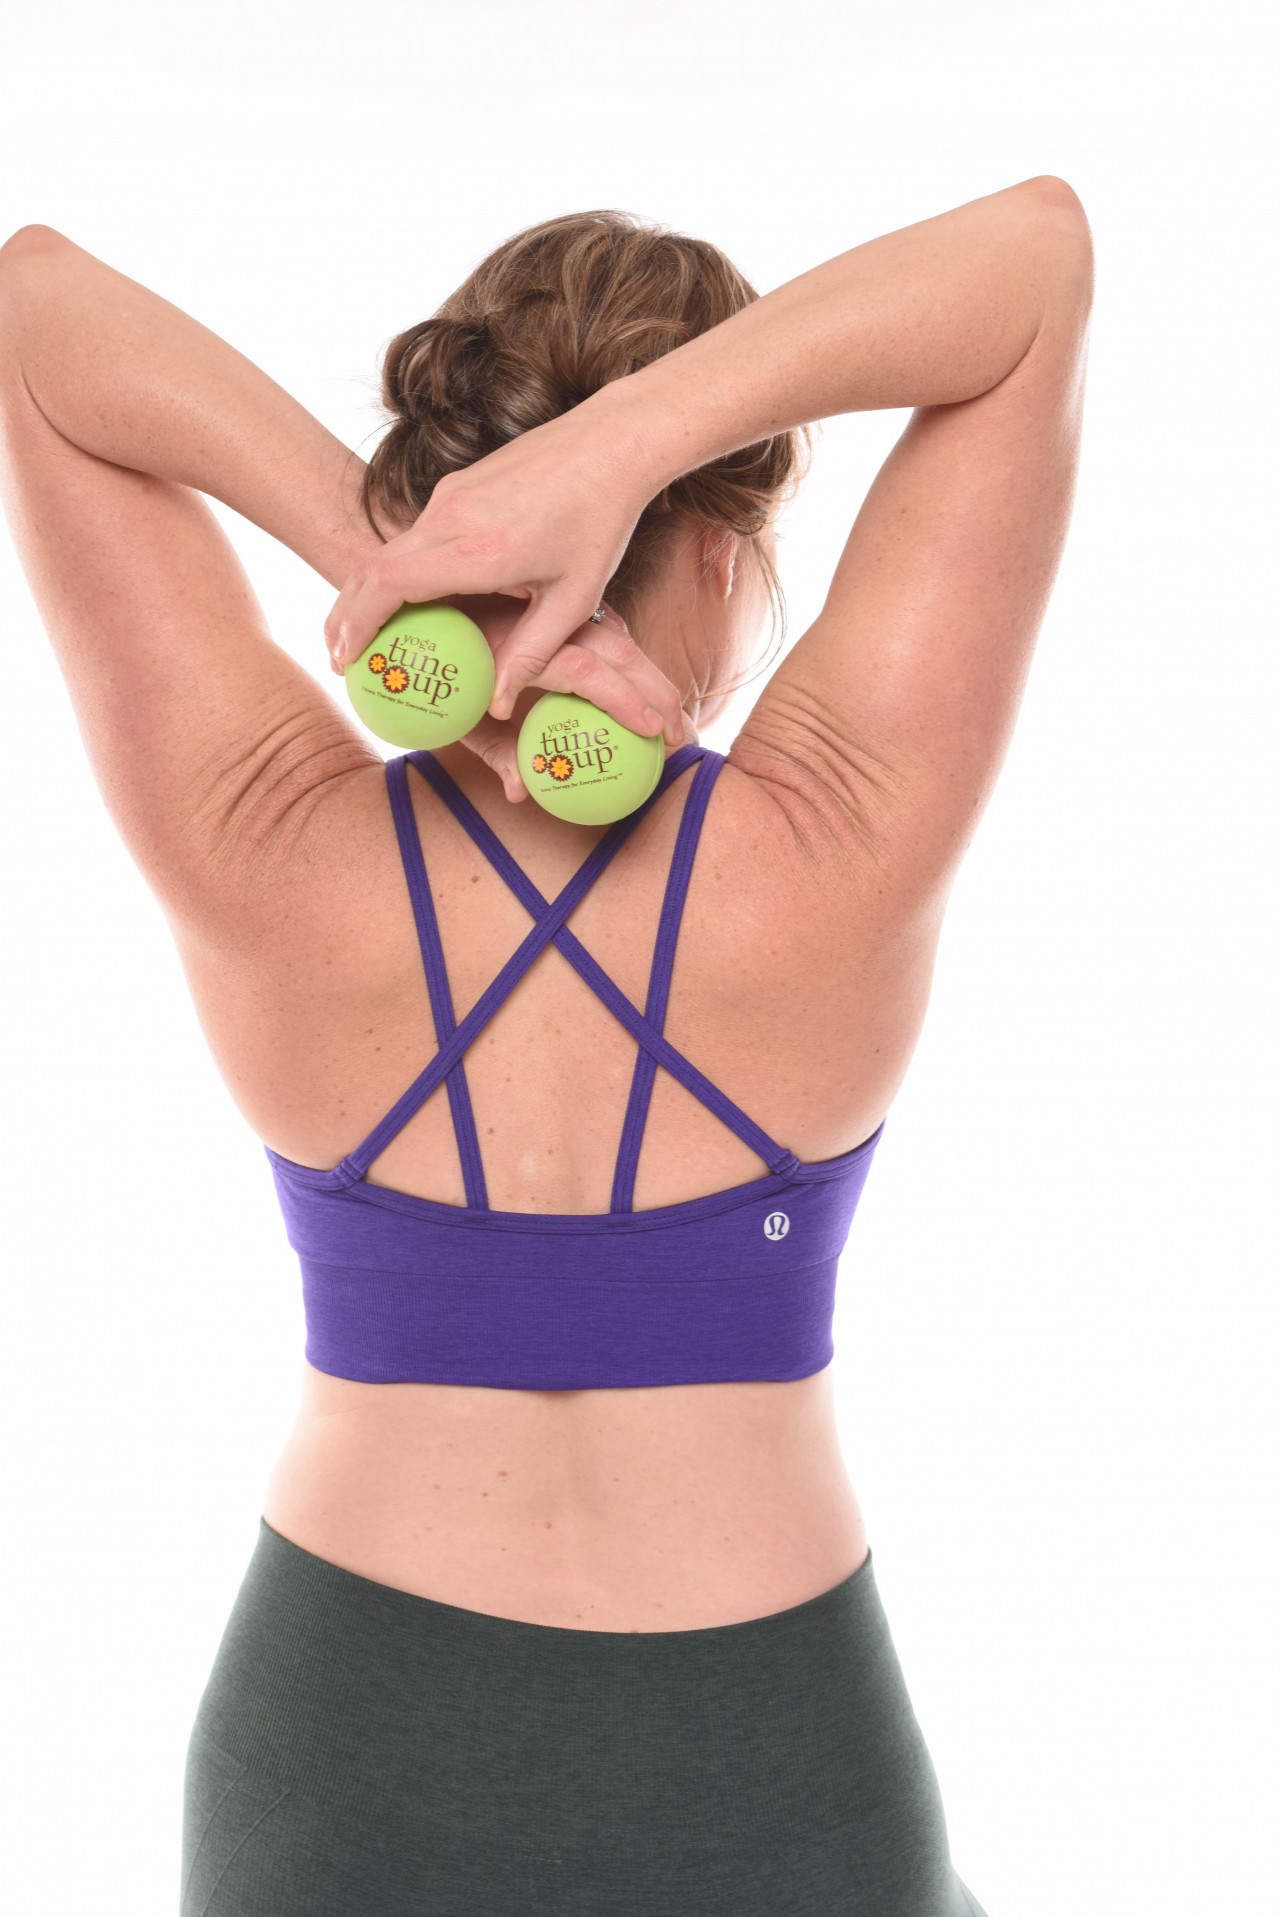 SELF CARE Therapy Balls Yoga Tune Up Roll Model® Therapy Balls